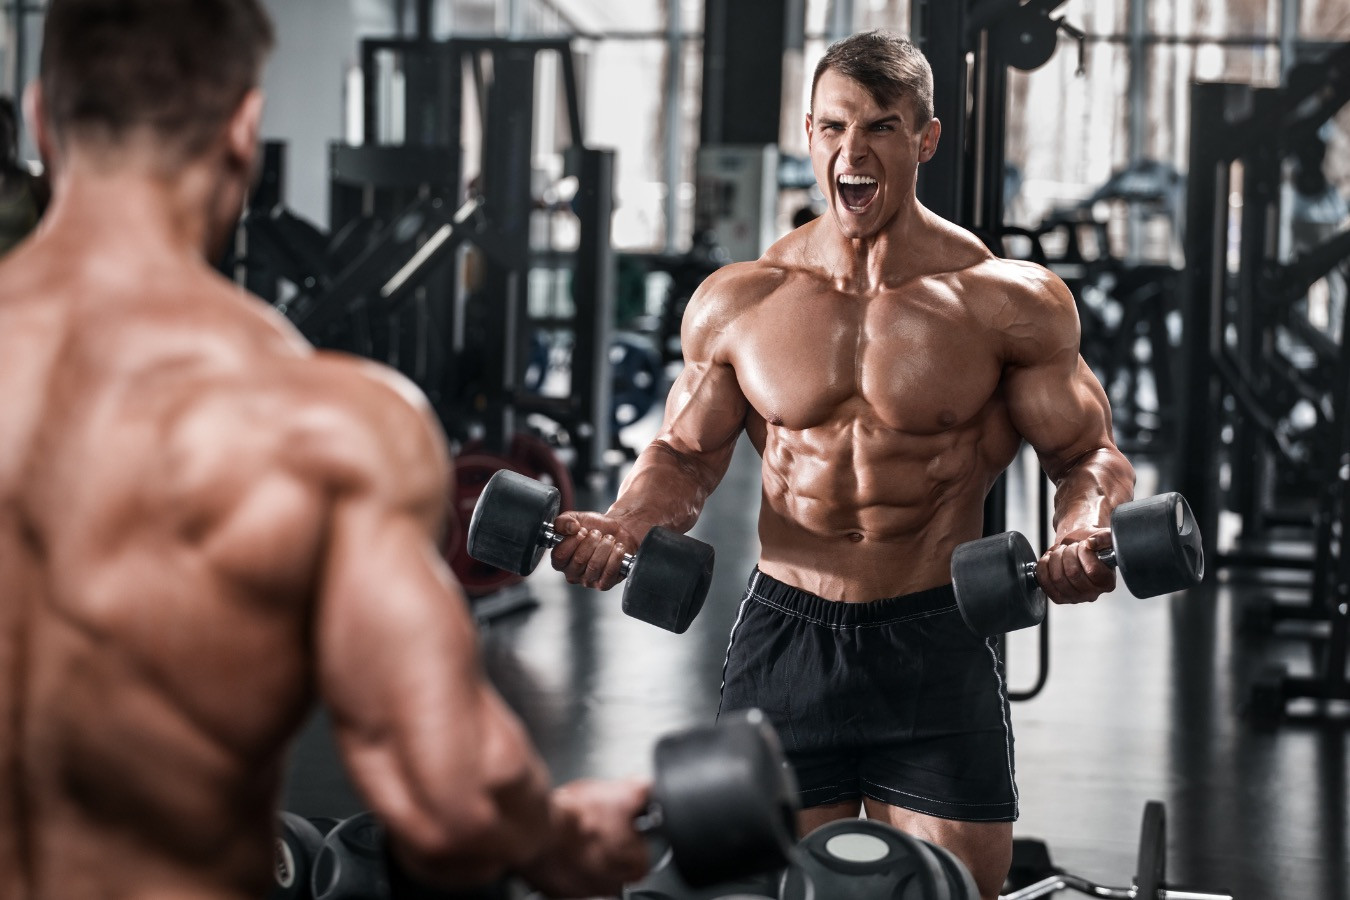 Growth hormone in sports